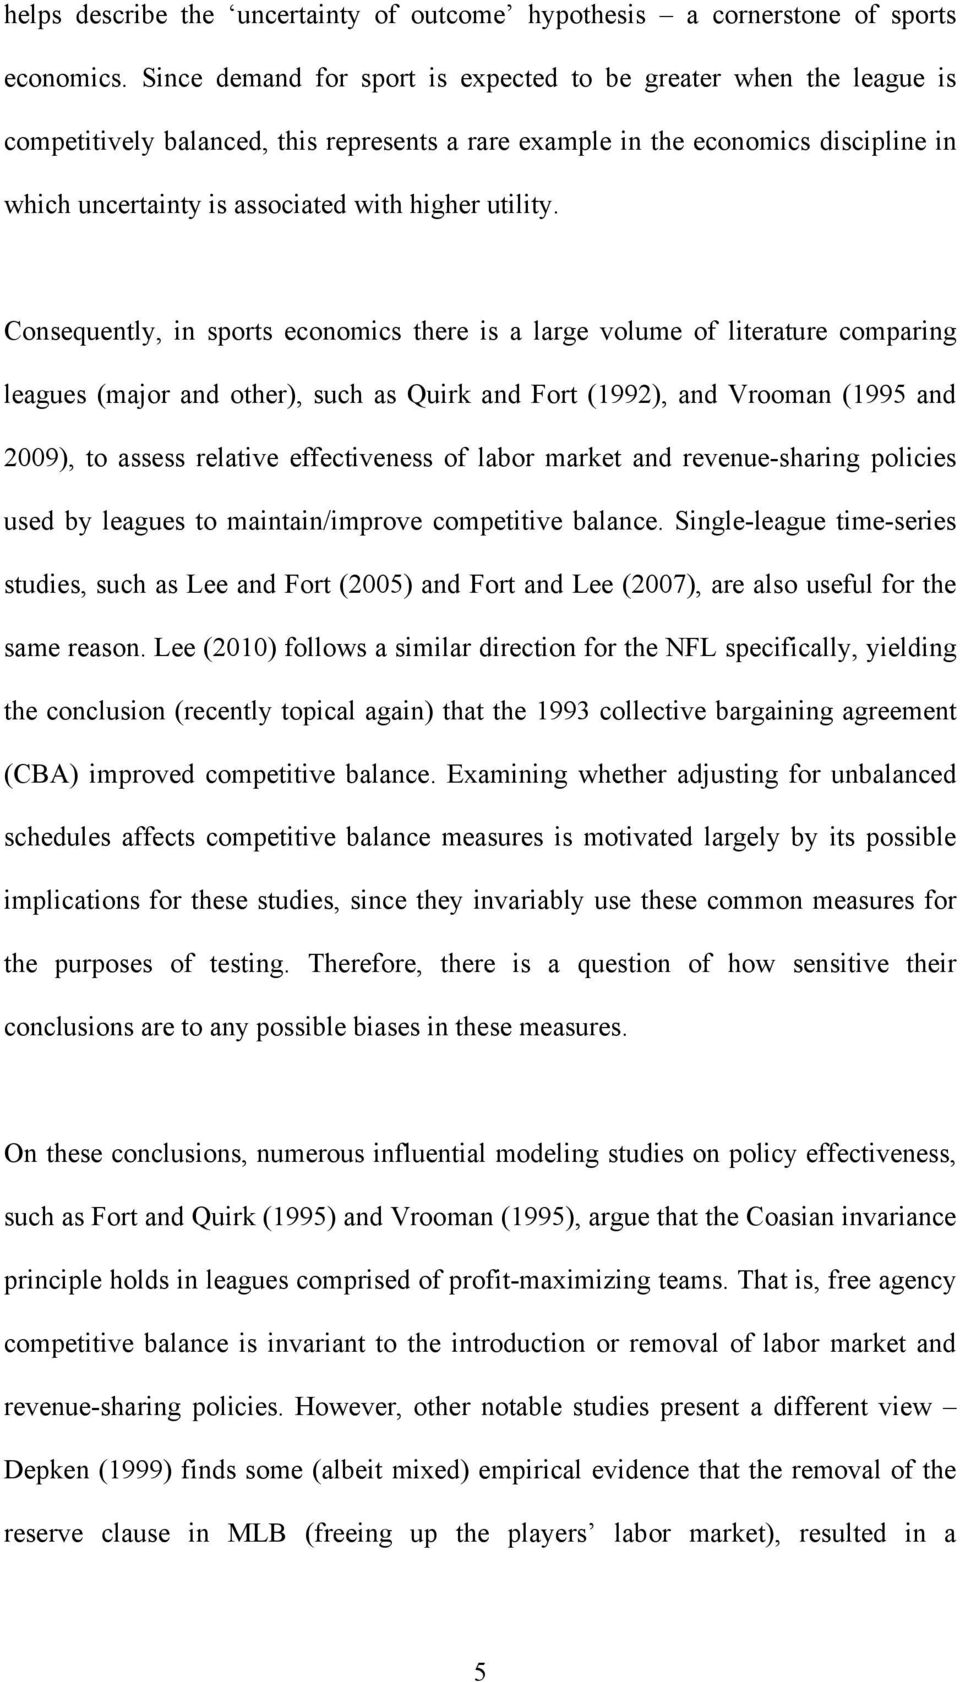 Cosequetly, i sports ecoomics there is a large volume of literature comparig leagues (major ad other), such as Quirk ad Fort (992), ad Vrooma (995 ad 2009), to assess relative effectiveess of labor